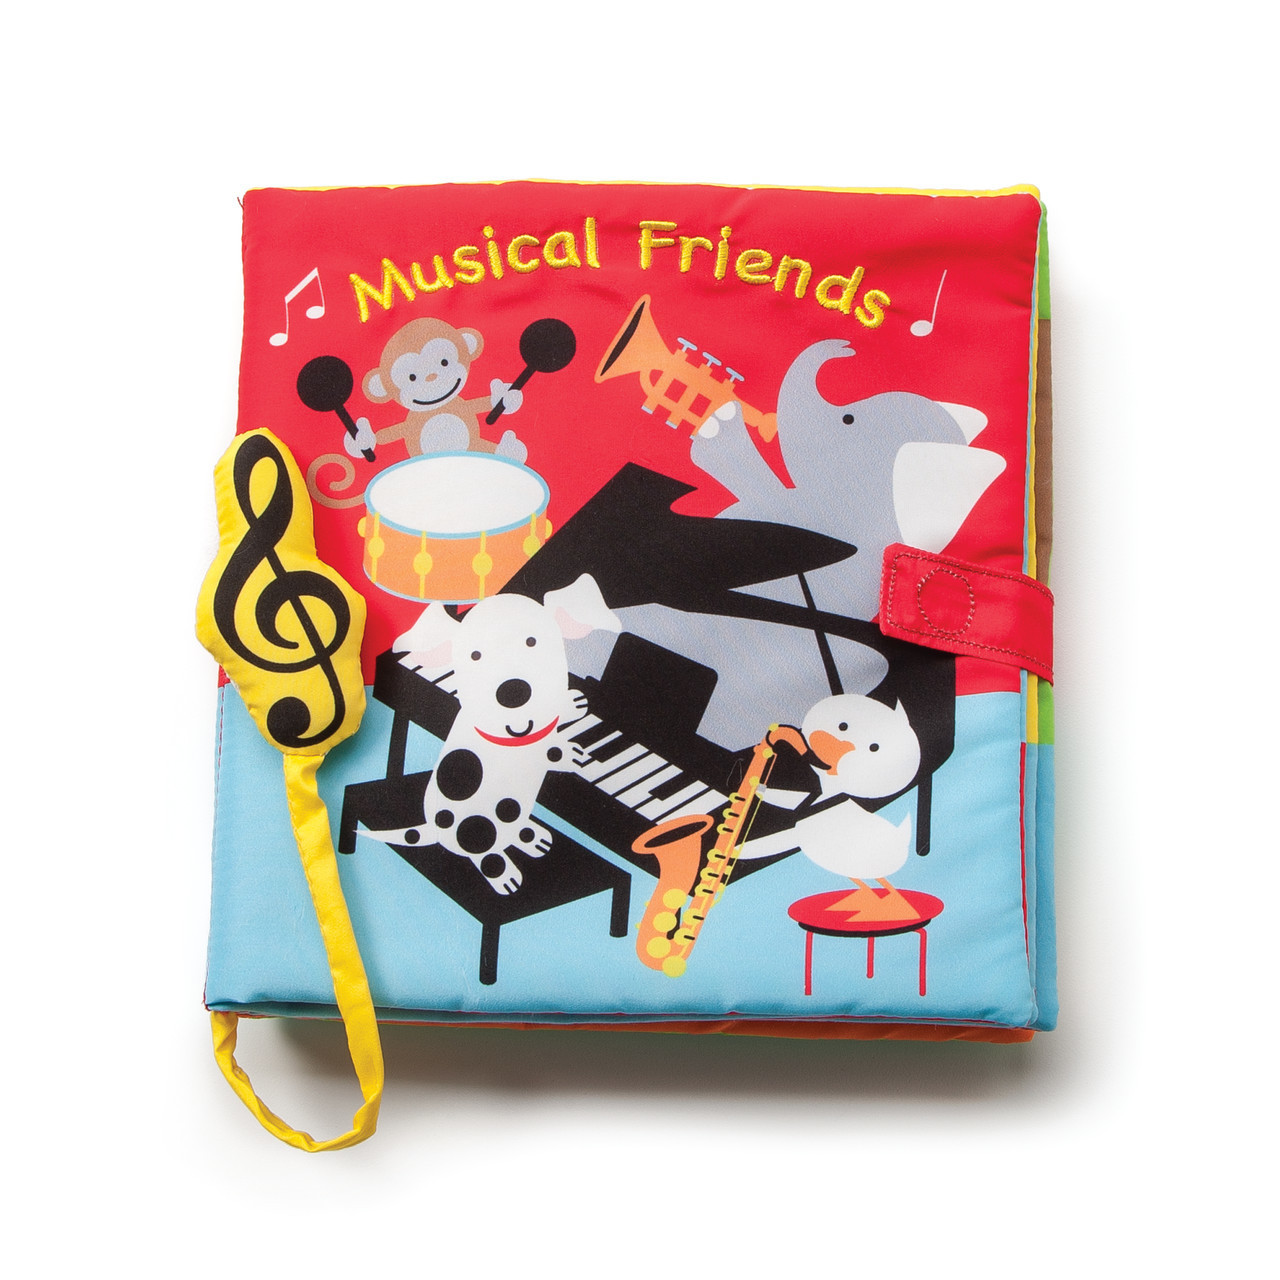 demdaco musical friends book with sound